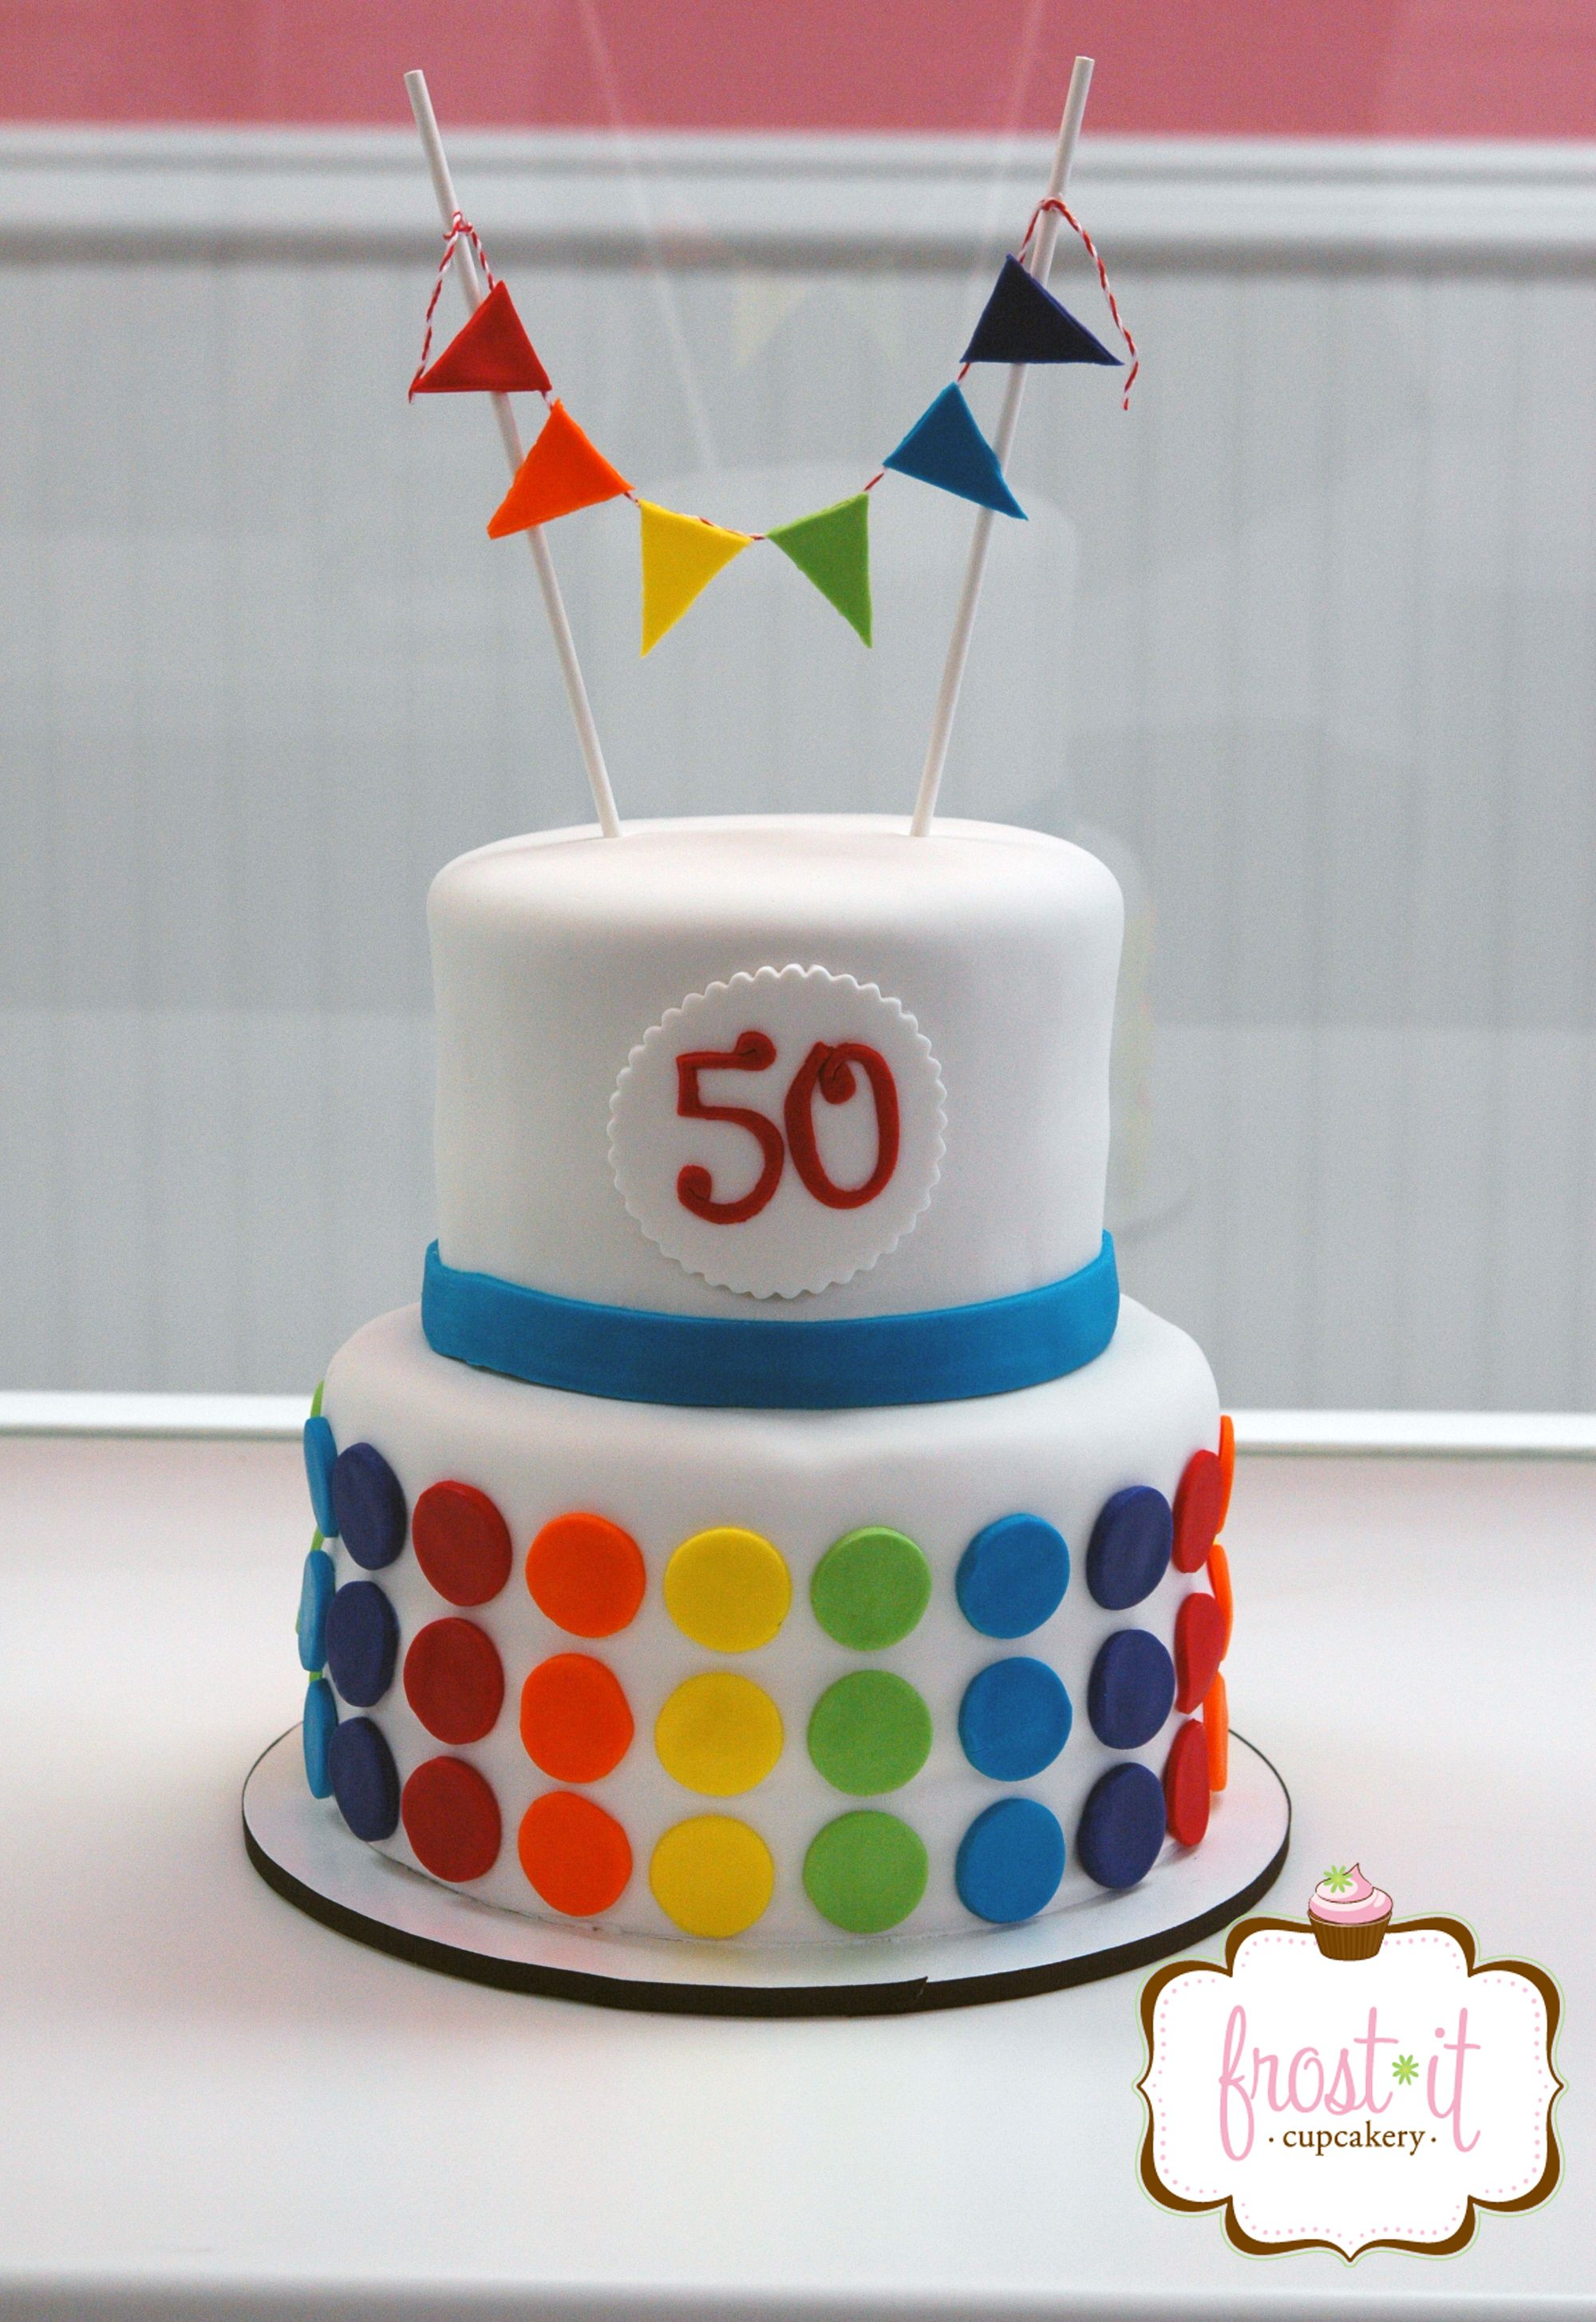 Two Tier Fondant Rainbow Color Polka Dot Cake Cute